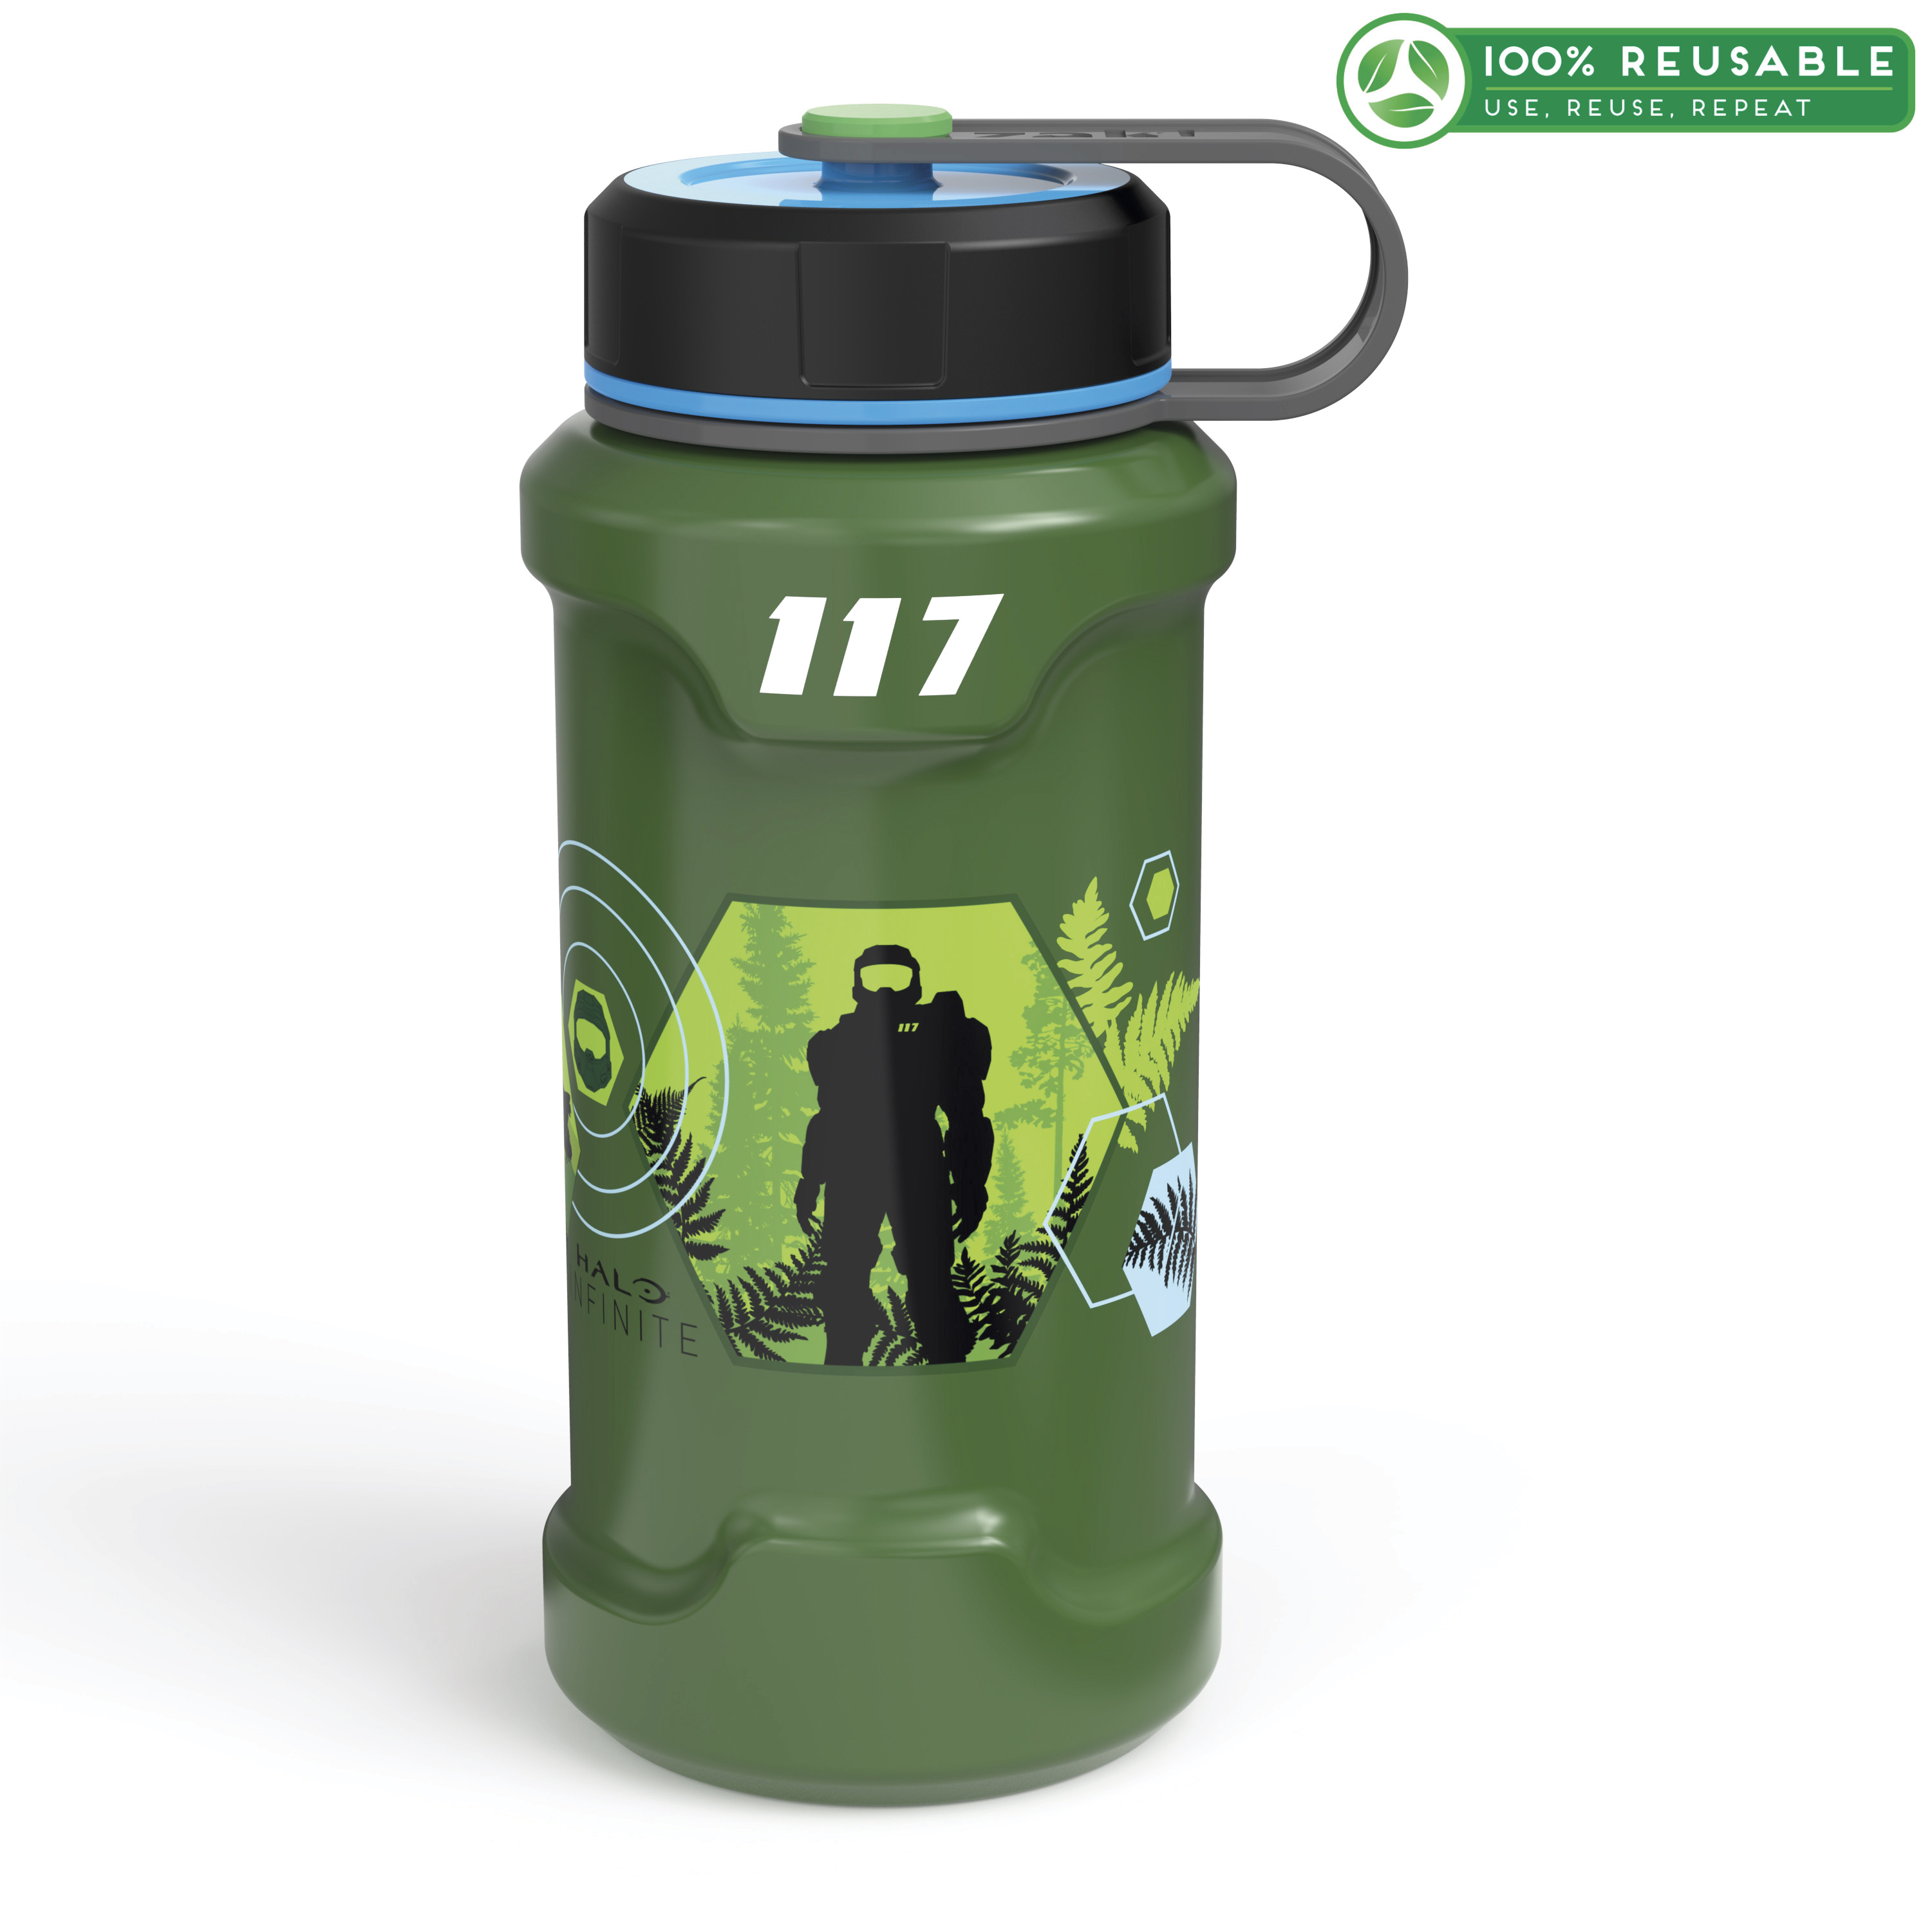 XBOX 24 ounce Stainless Steel Insulated Water Bottle, Halo slideshow image 1